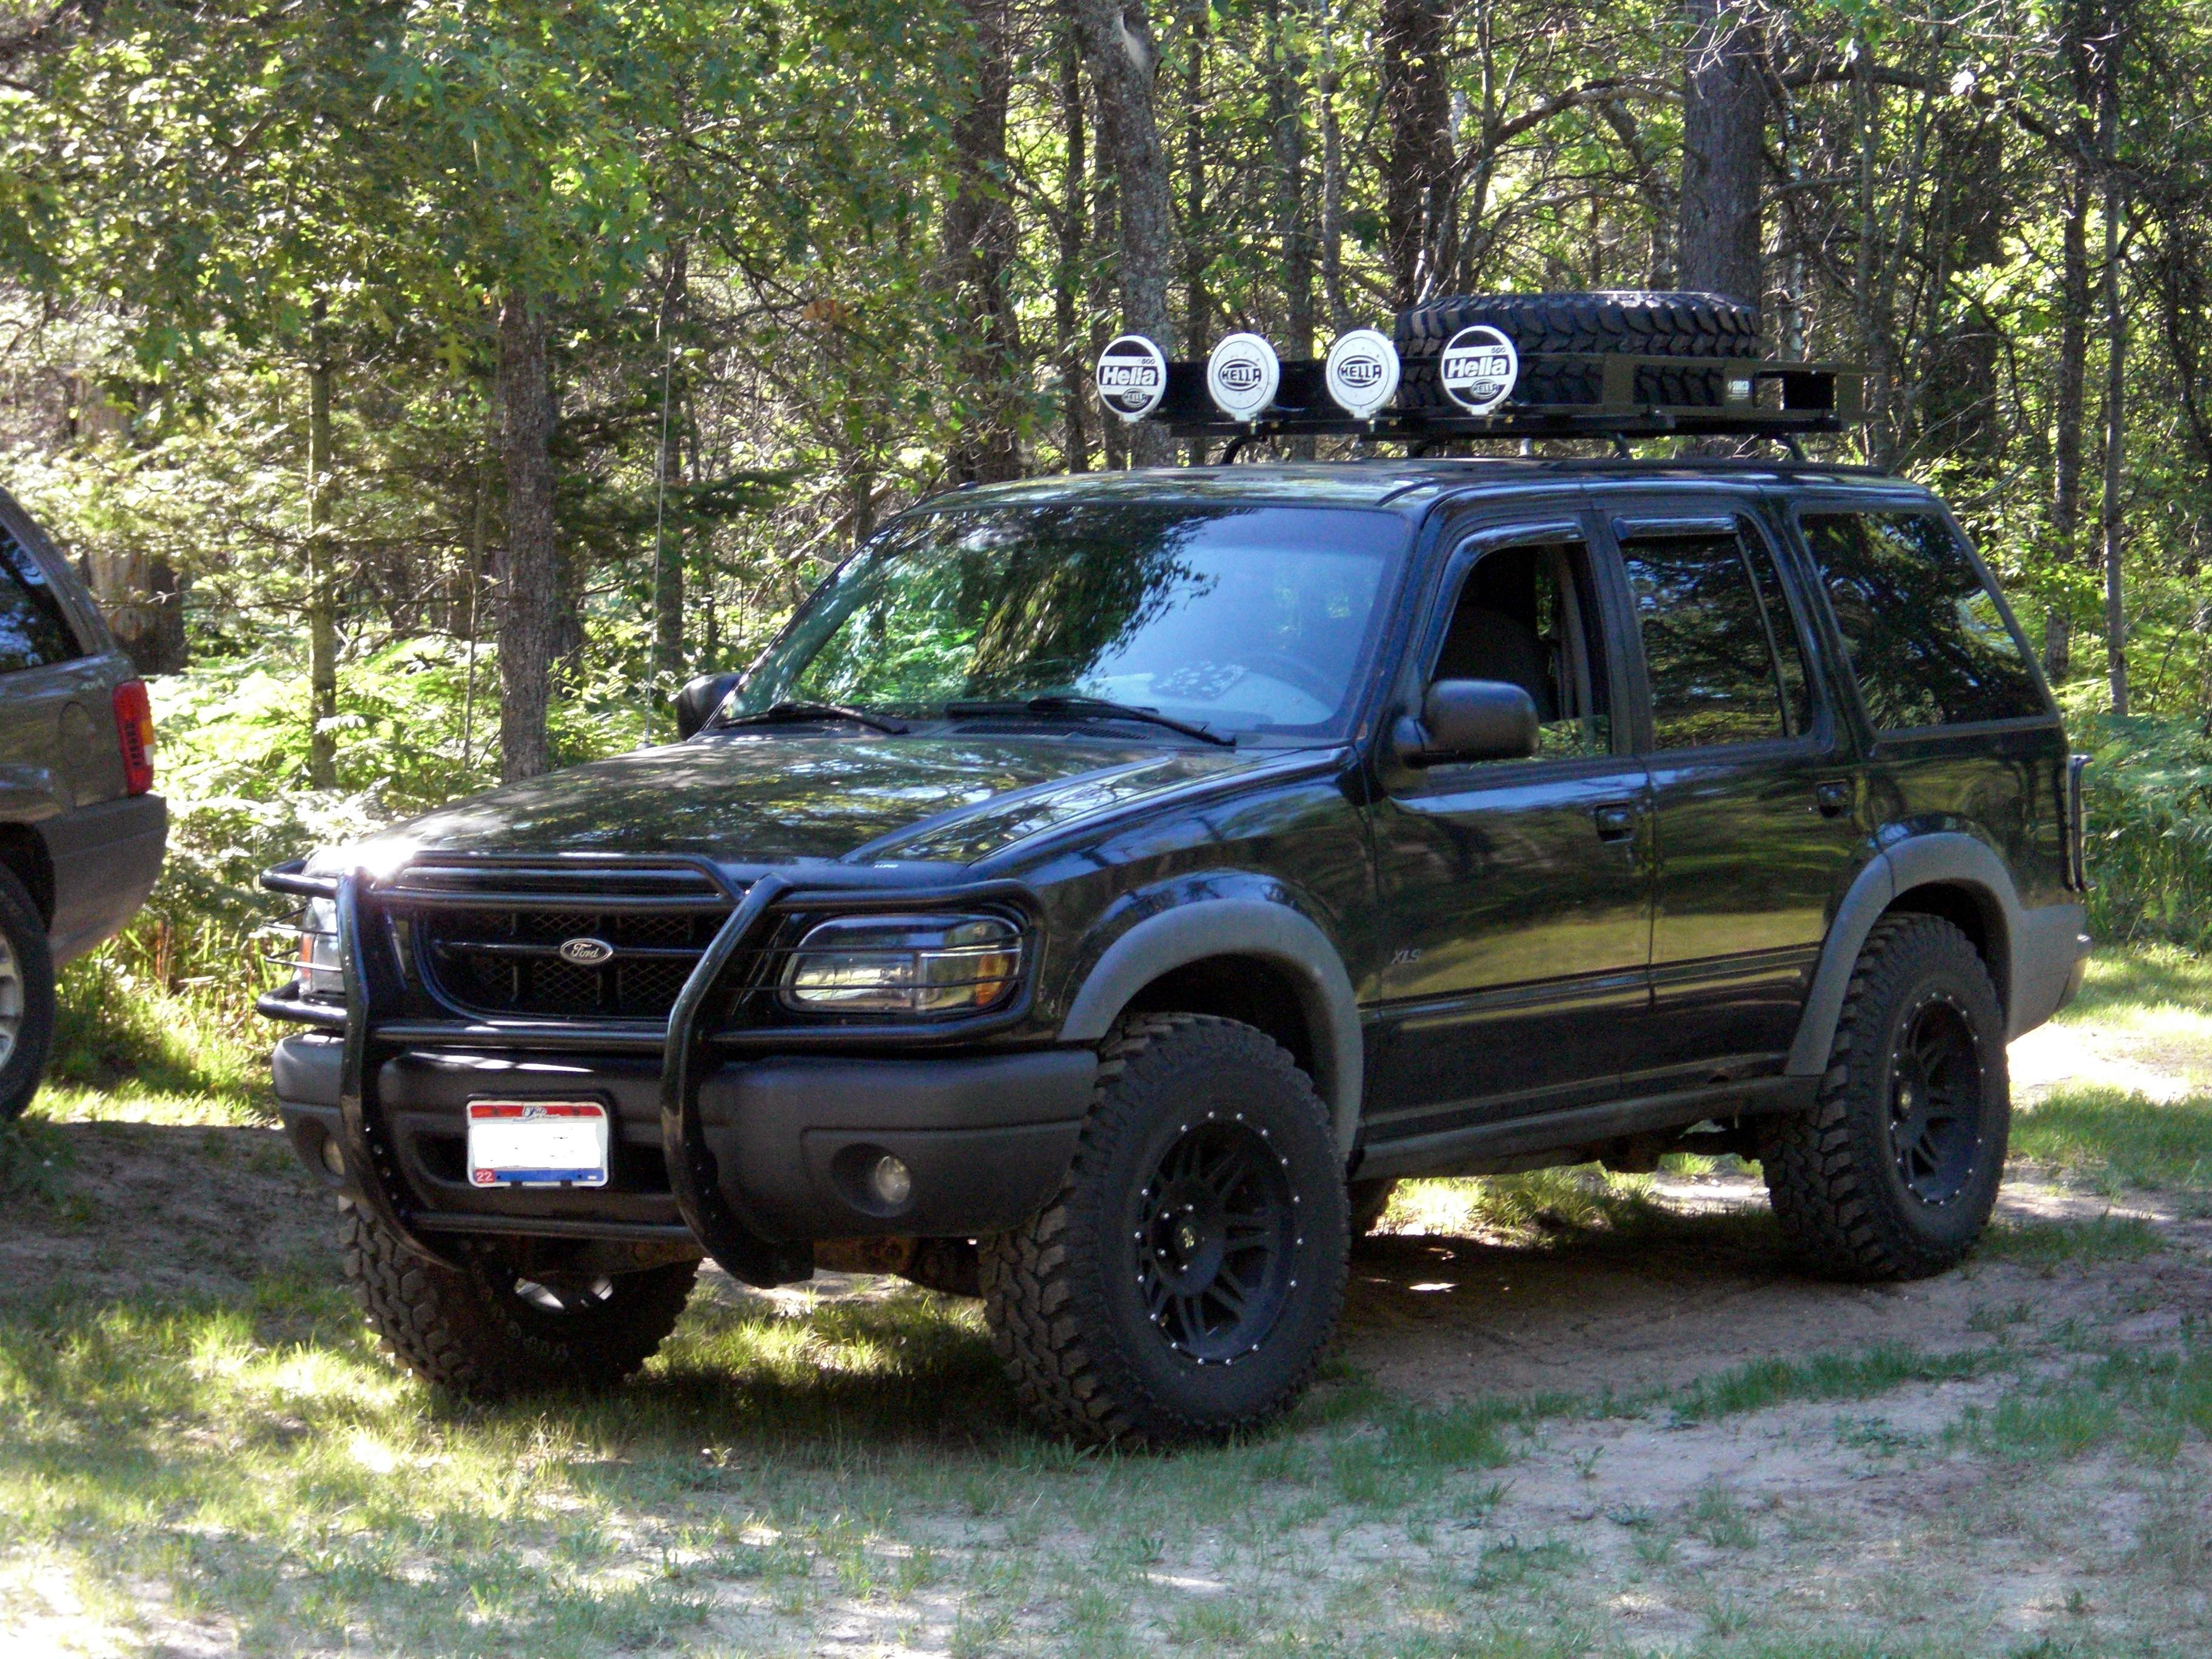 Elky 77 1999 Ford Explorer S Photo Gallery At Cardomain